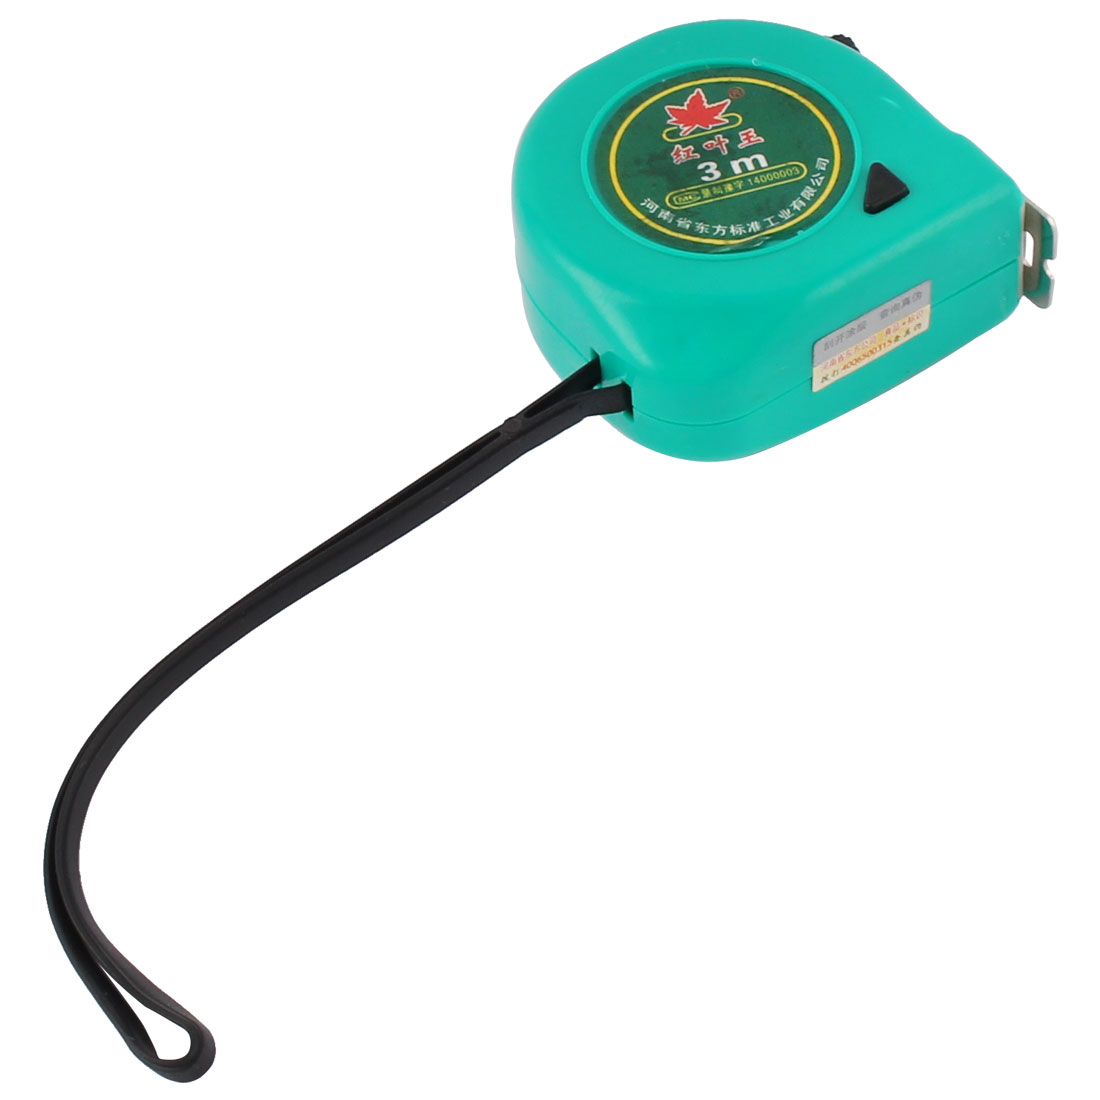 Plastic Case Hand Strap Retractable Measure Tape Ruler Metric Measuring Tool Green 3 Meters Length